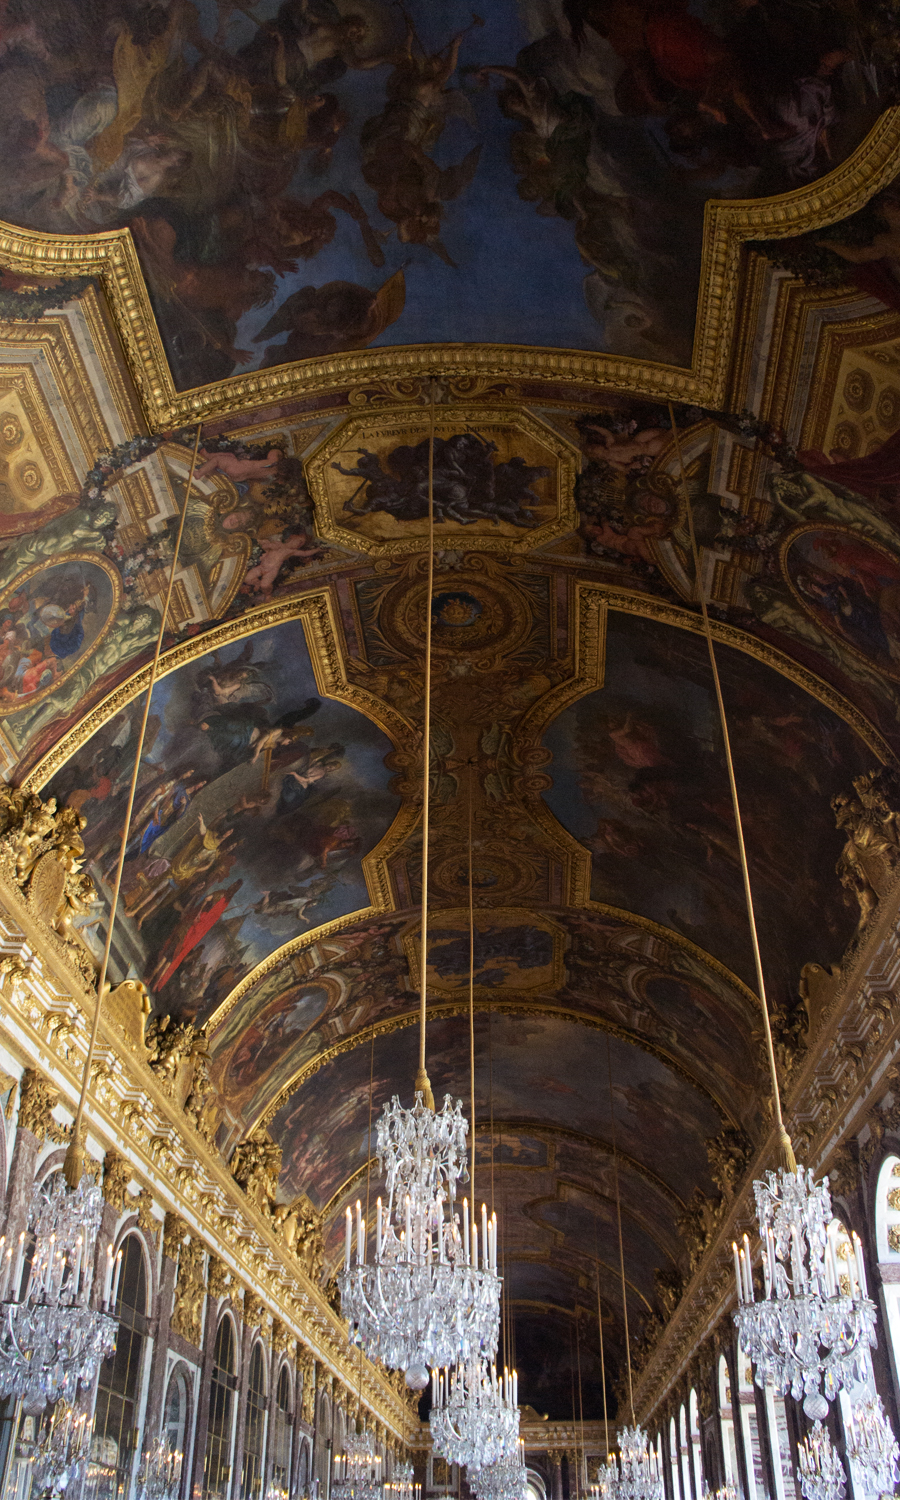 2014-chateau-de-versailles-paris-france-28